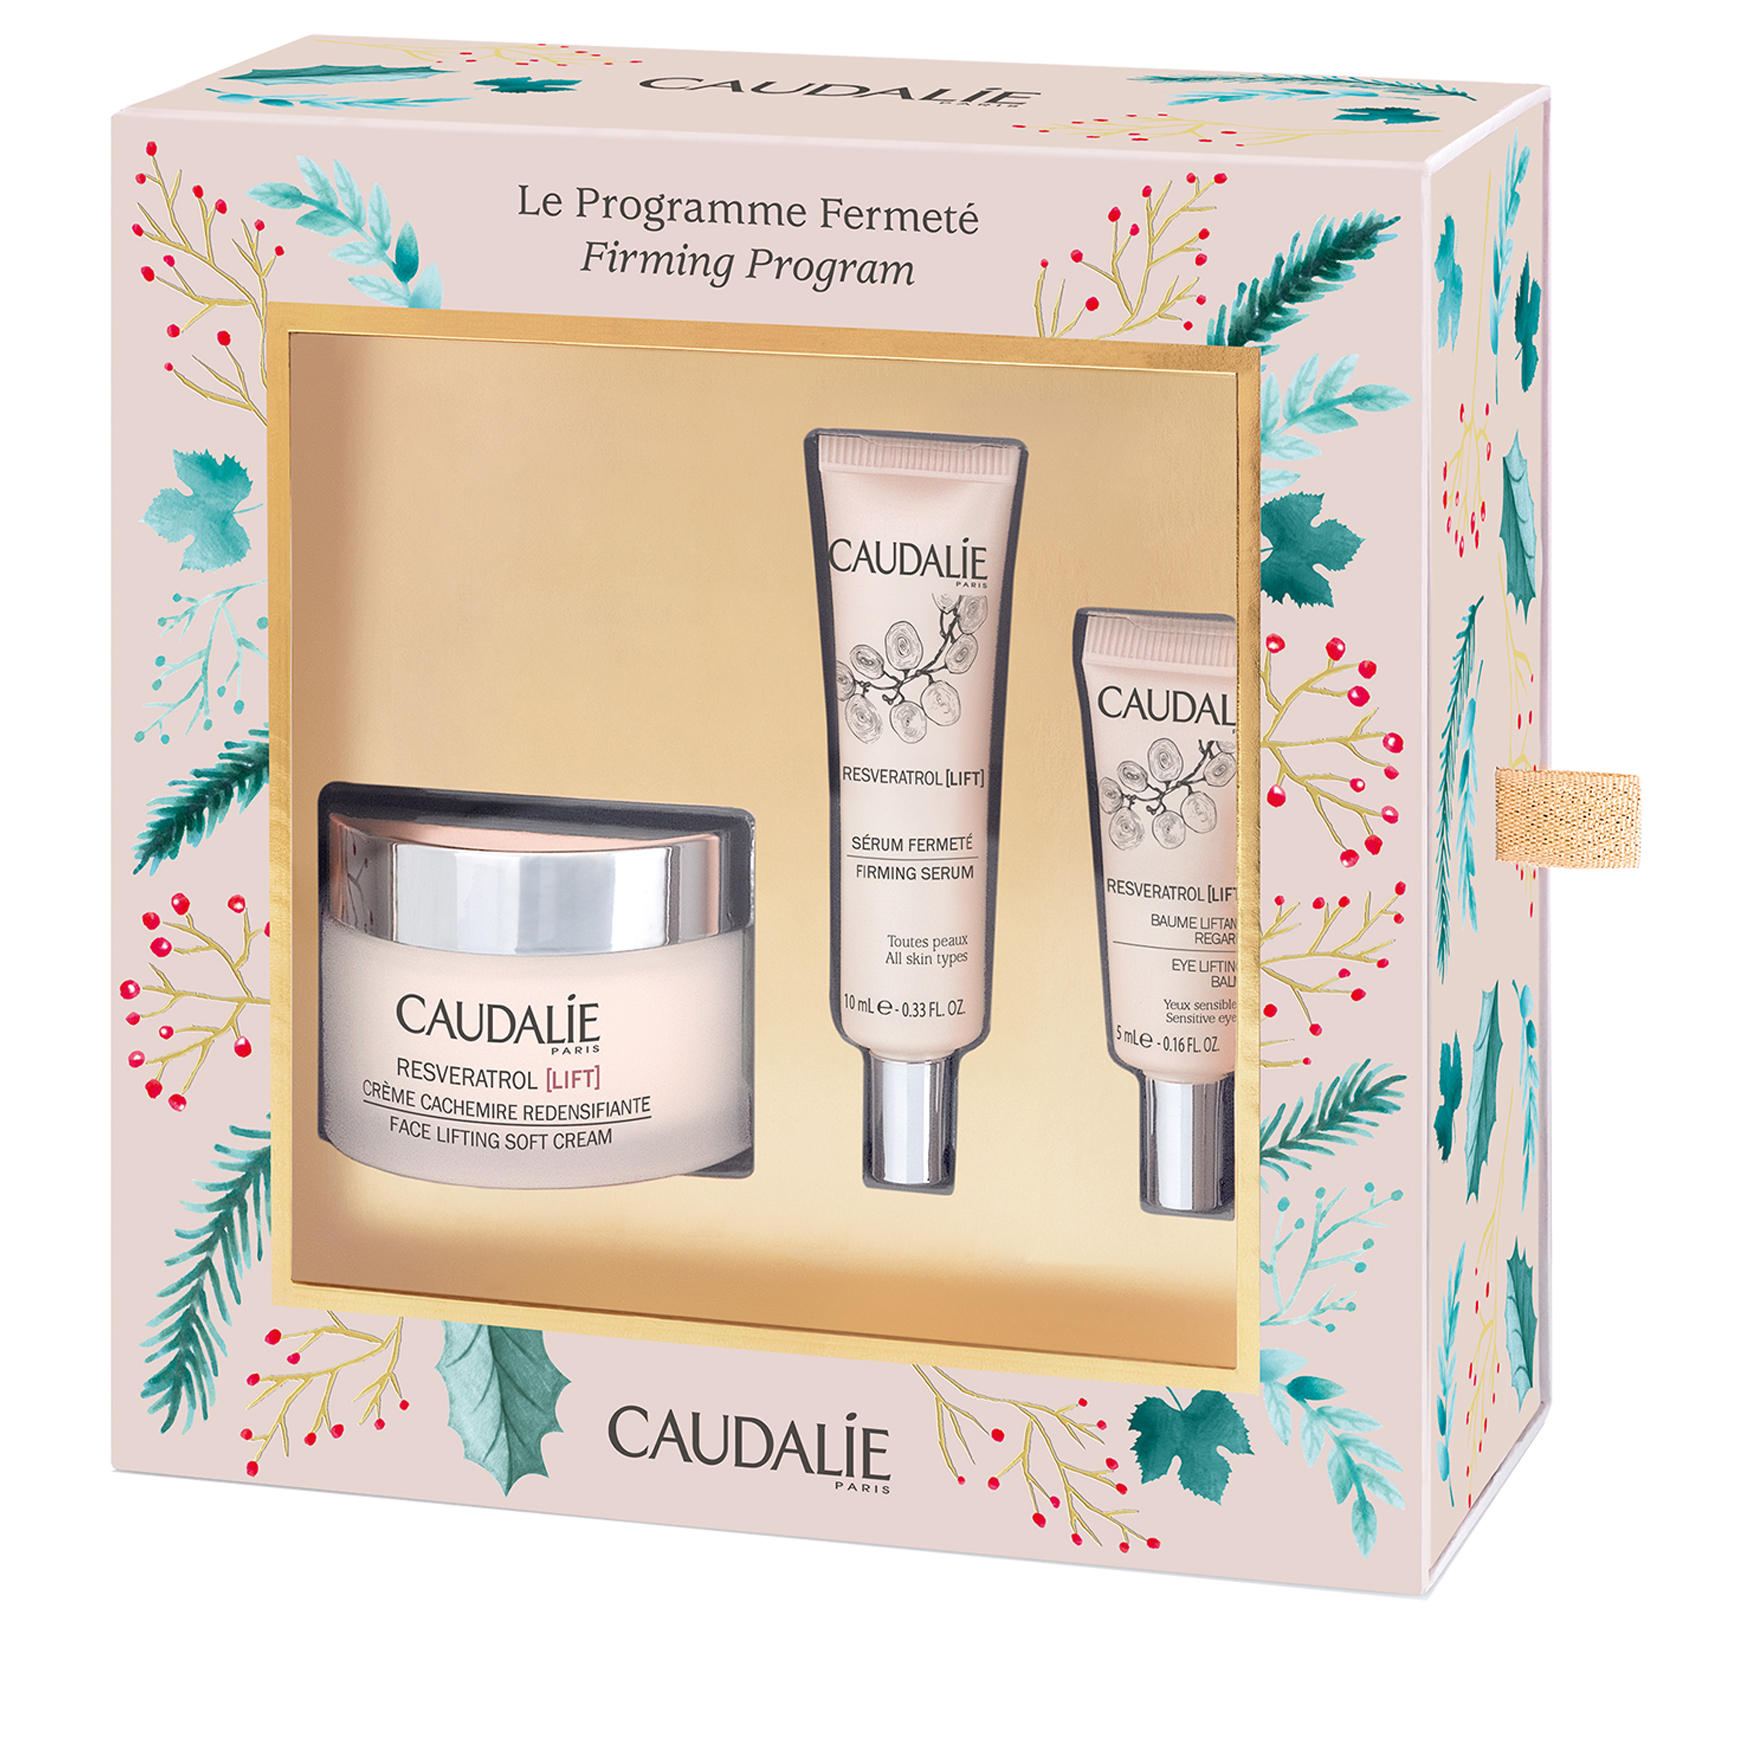 Caudalie Resveratrol Lift Firmingcollection Space Nk